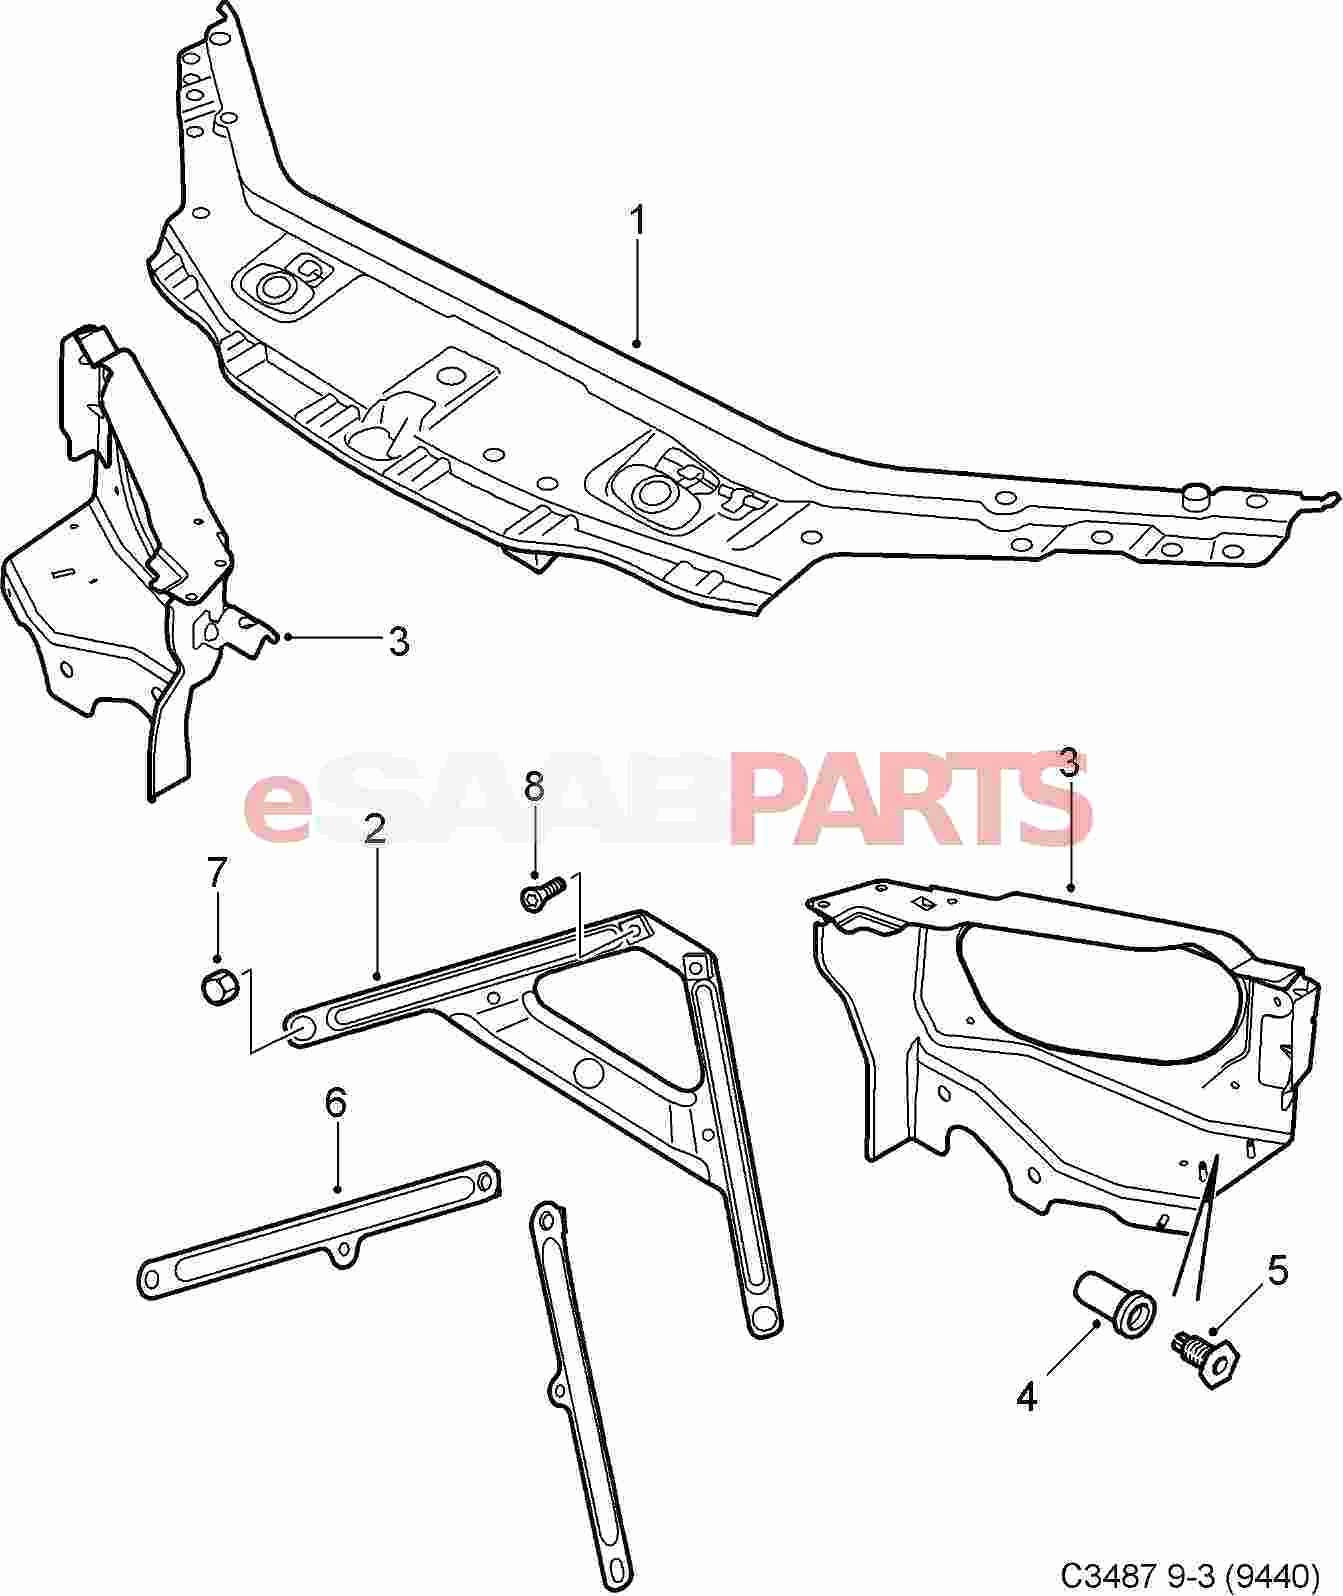 Diagram Of Car Exterior Parts Car Exterior Body Parts Diagram Awesome Esaabparts Saab 9 3 9440 Car Of Diagram Of Car Exterior Parts